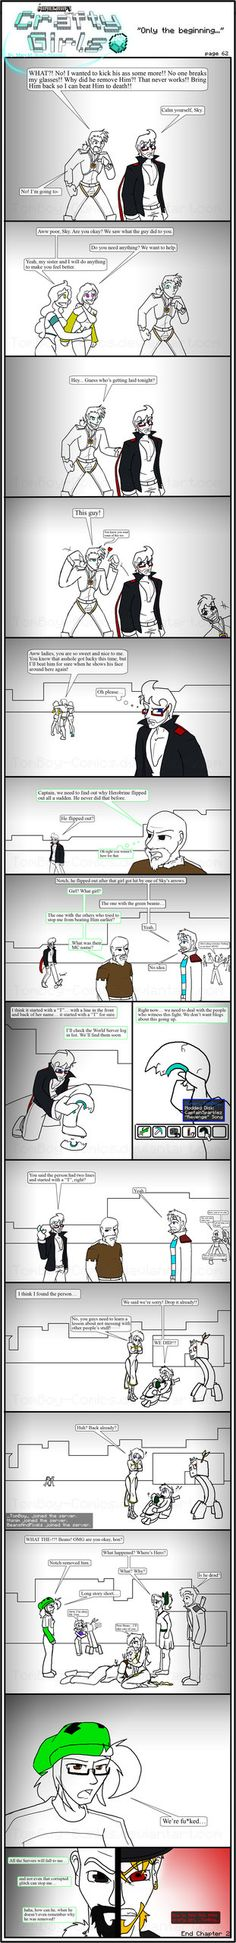 Minecraft Comic: CraftyGirls Pg 62 by TomBoy-Comics on deviantART